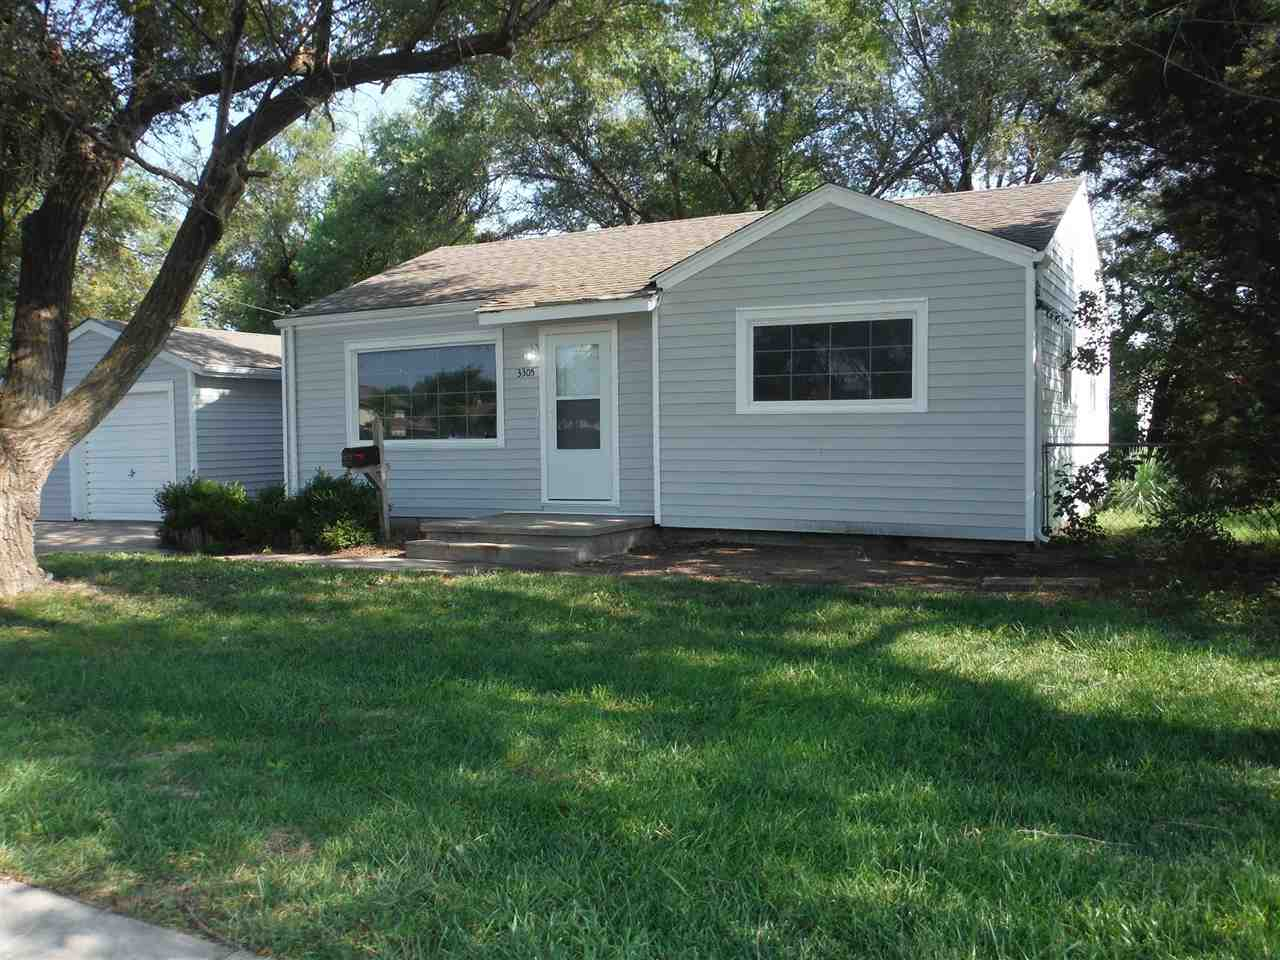 Freshly remodeled and updated 2 bedroom home with a 1-car garage. New granite in the kitchen with a